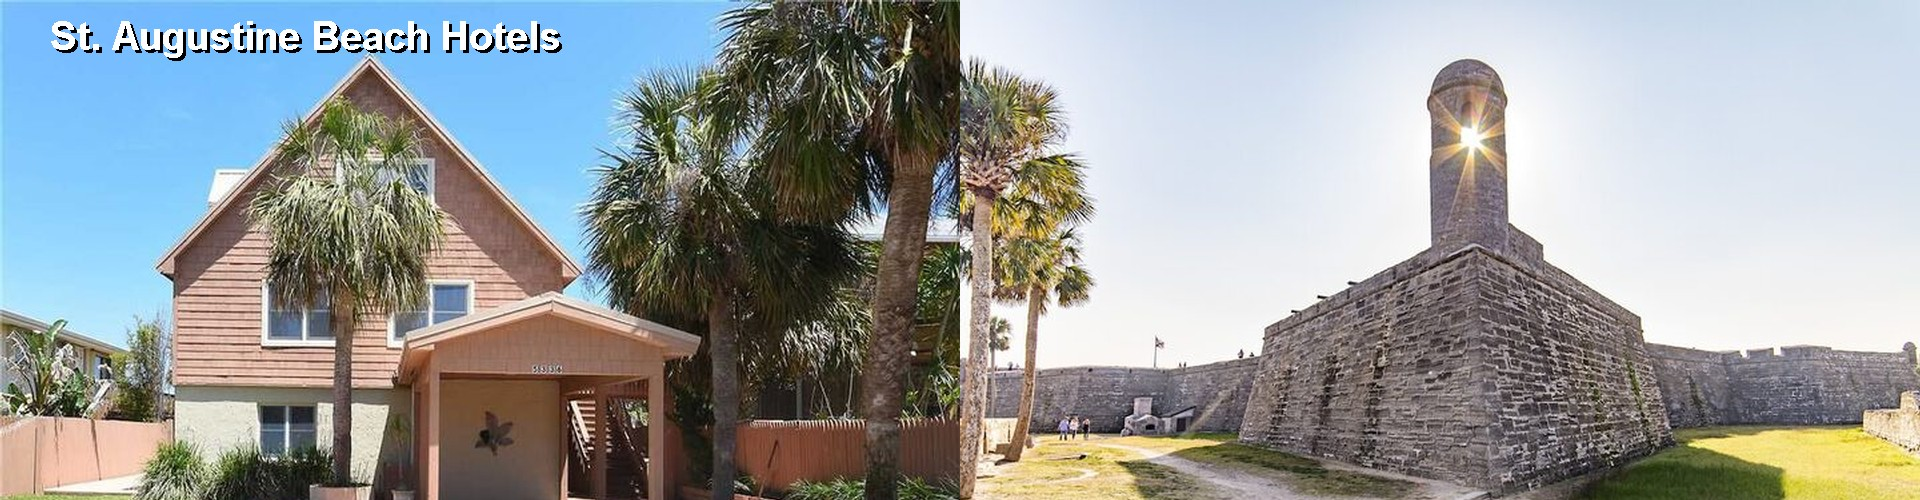 5 Best Hotels near St. Augustine Beach